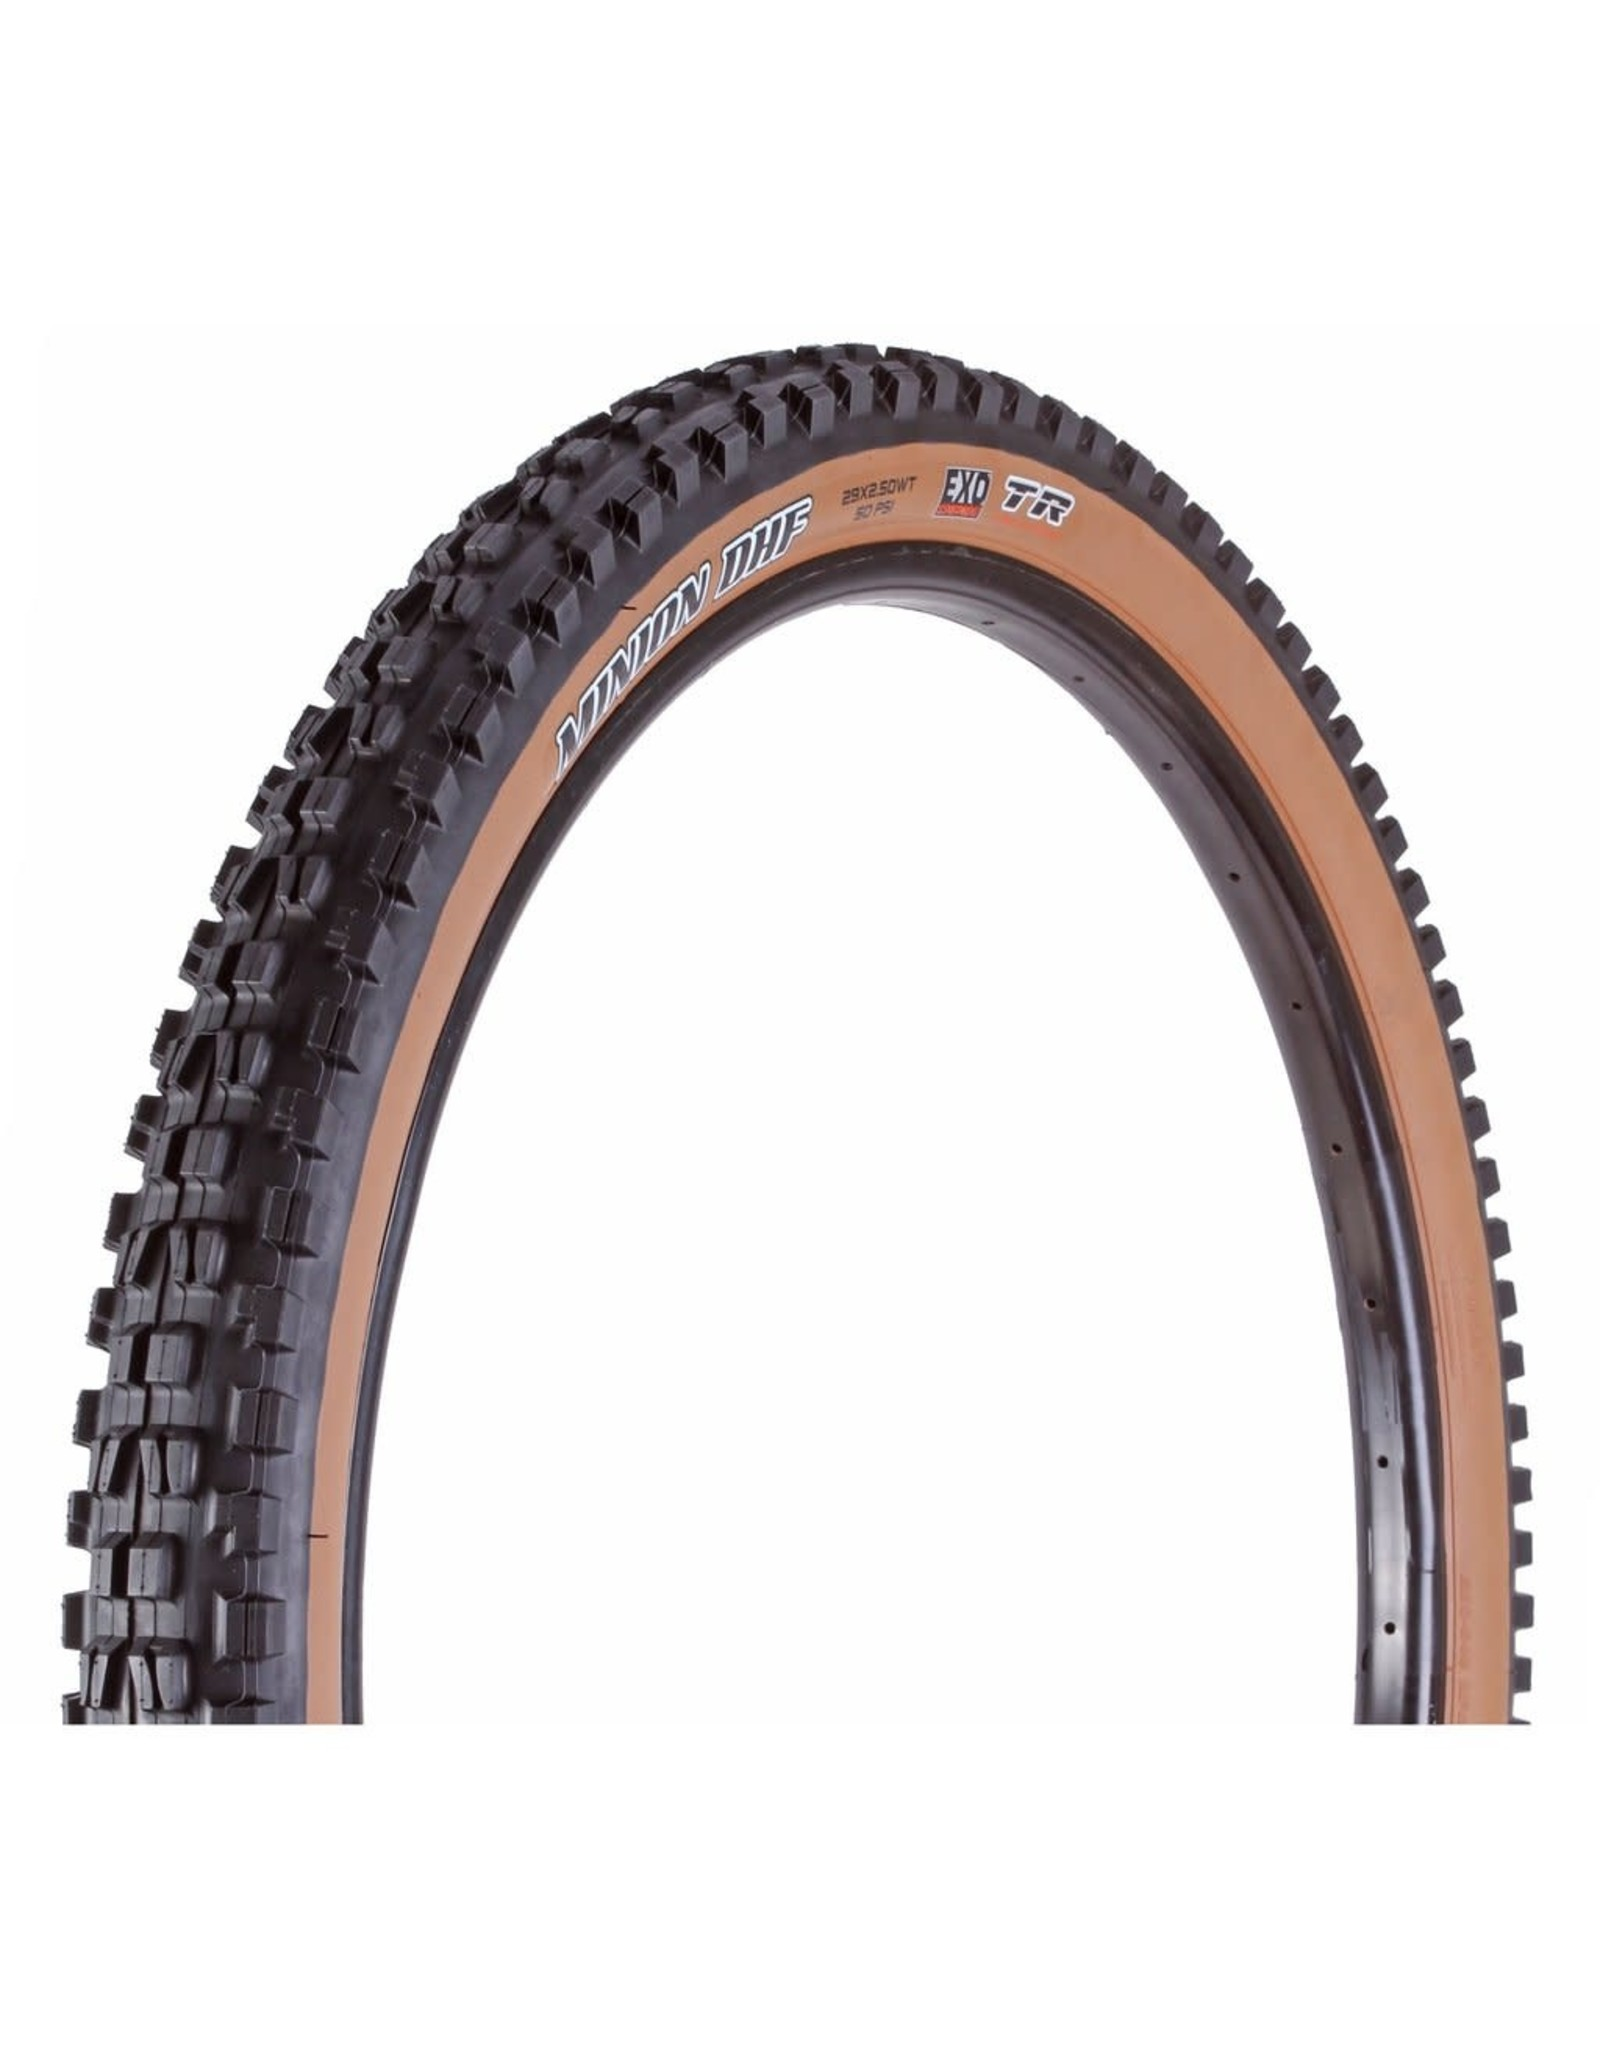 Maxxis Maxxis Minion DHF Tire - 29 x 2.5, Tubeless, Folding, Black/Tan, Dual, EXO, Wide Trail